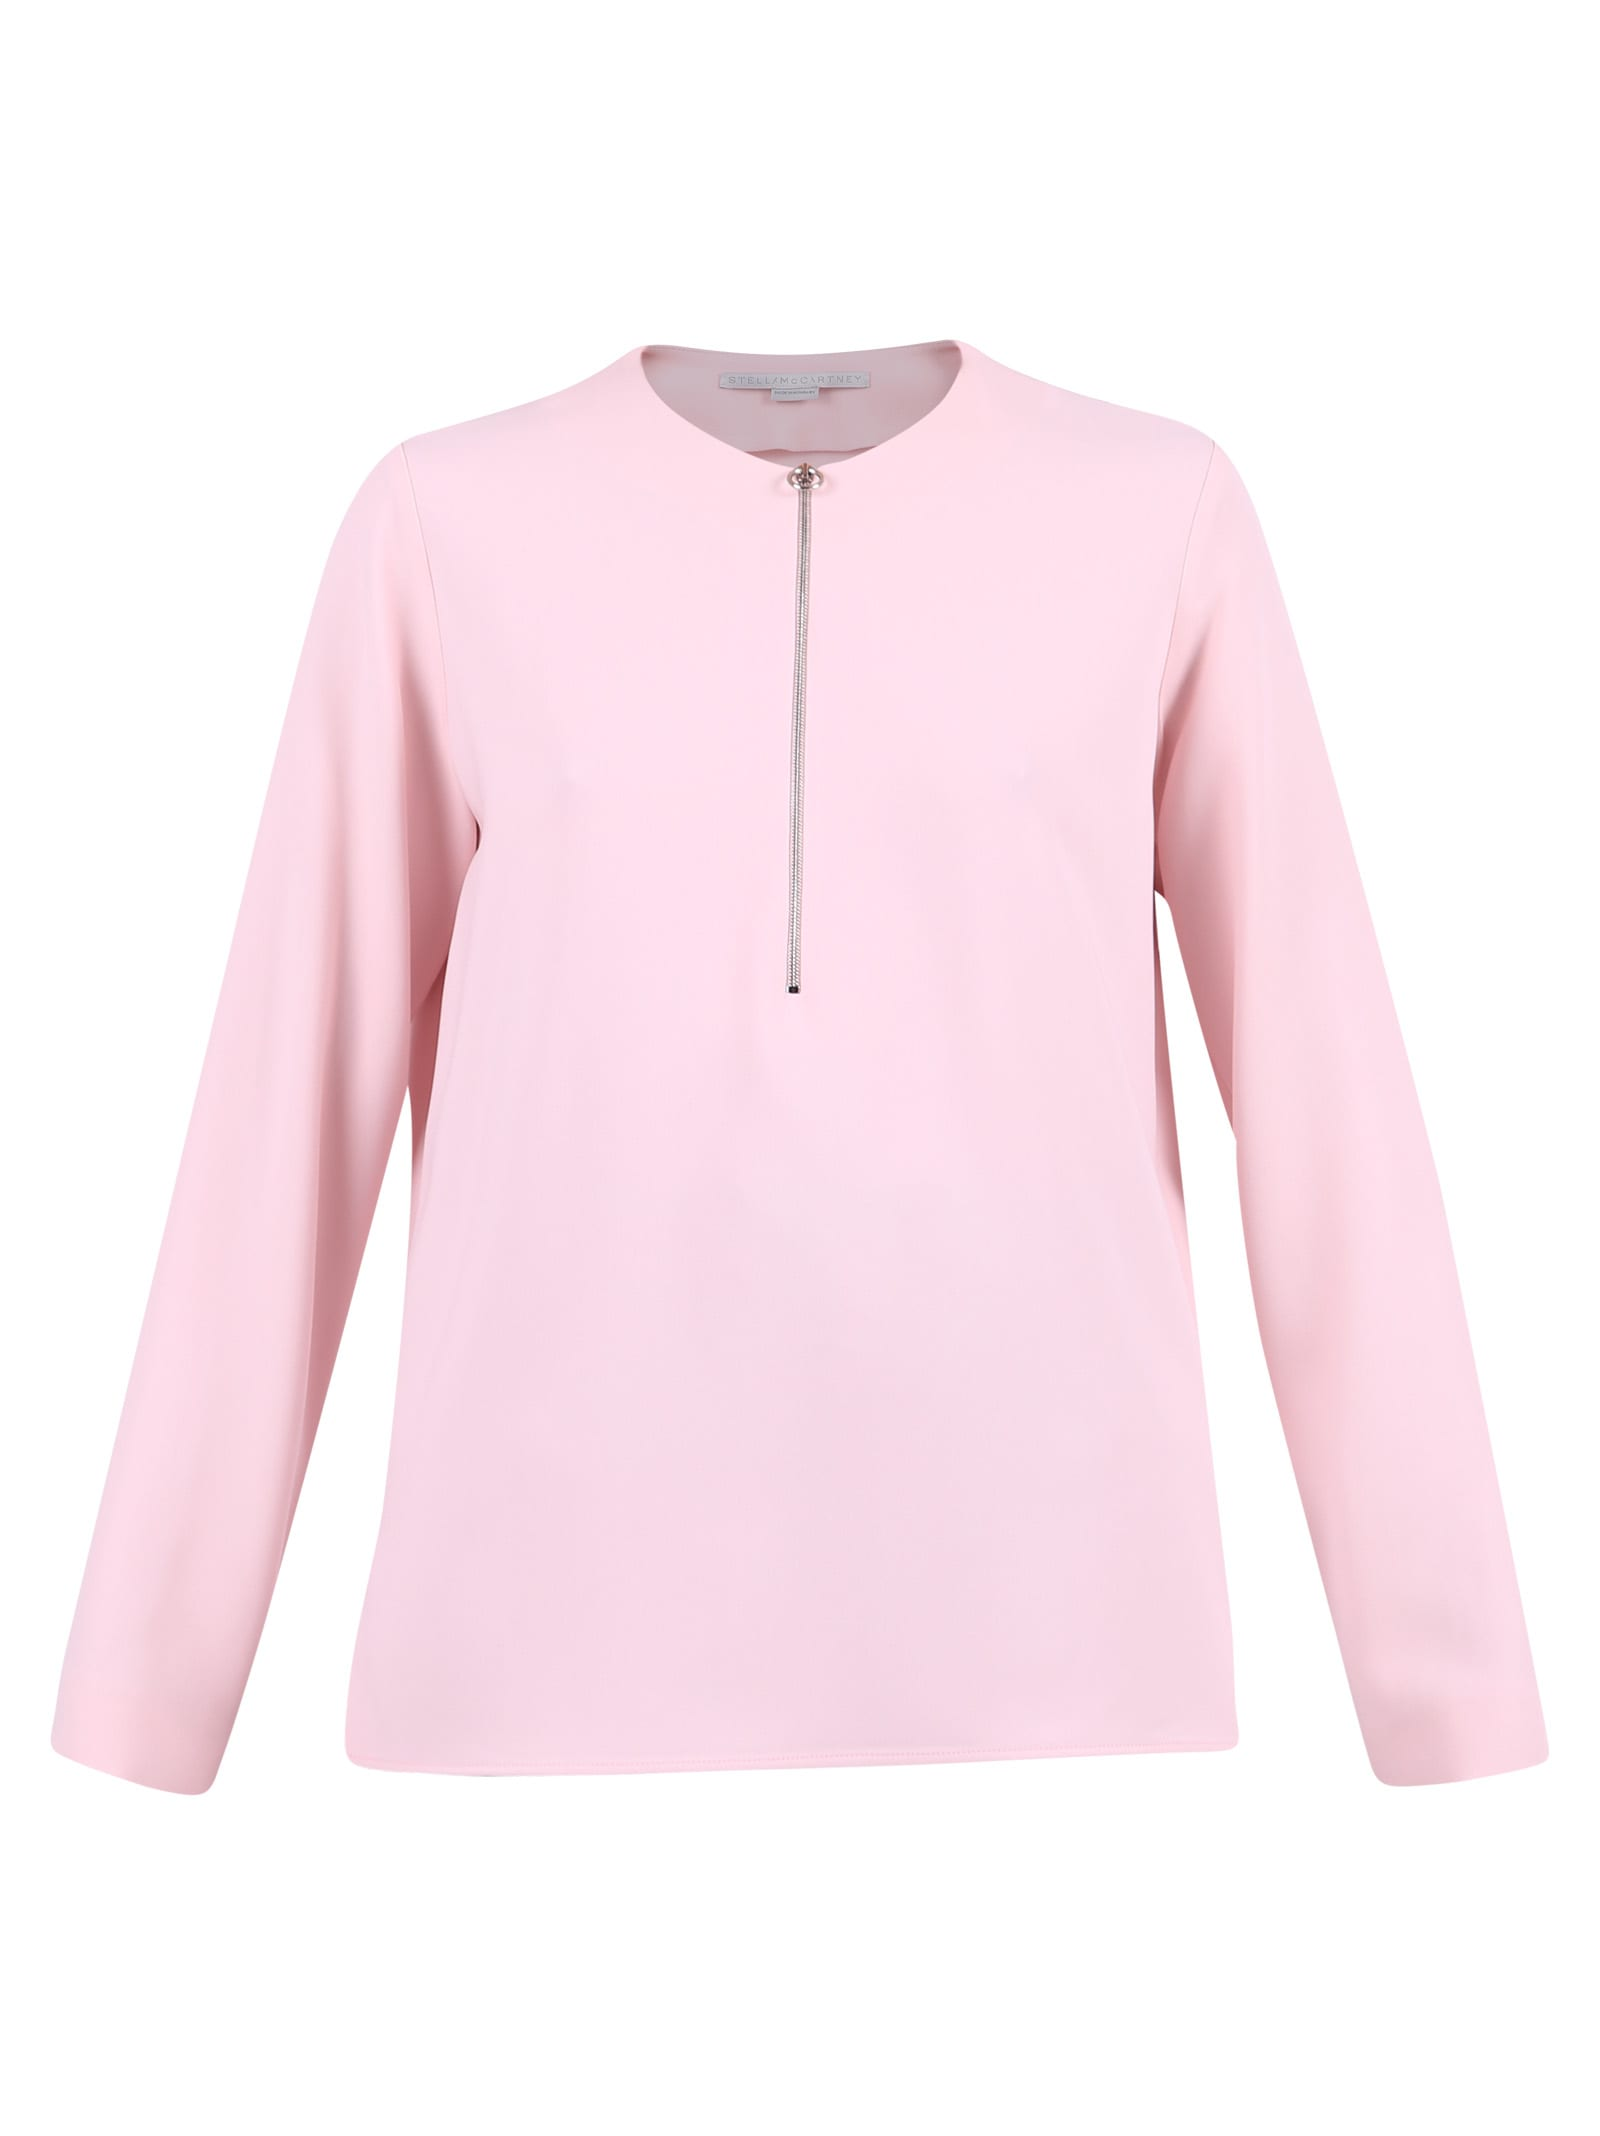 Stella McCartney Zipped Blouse